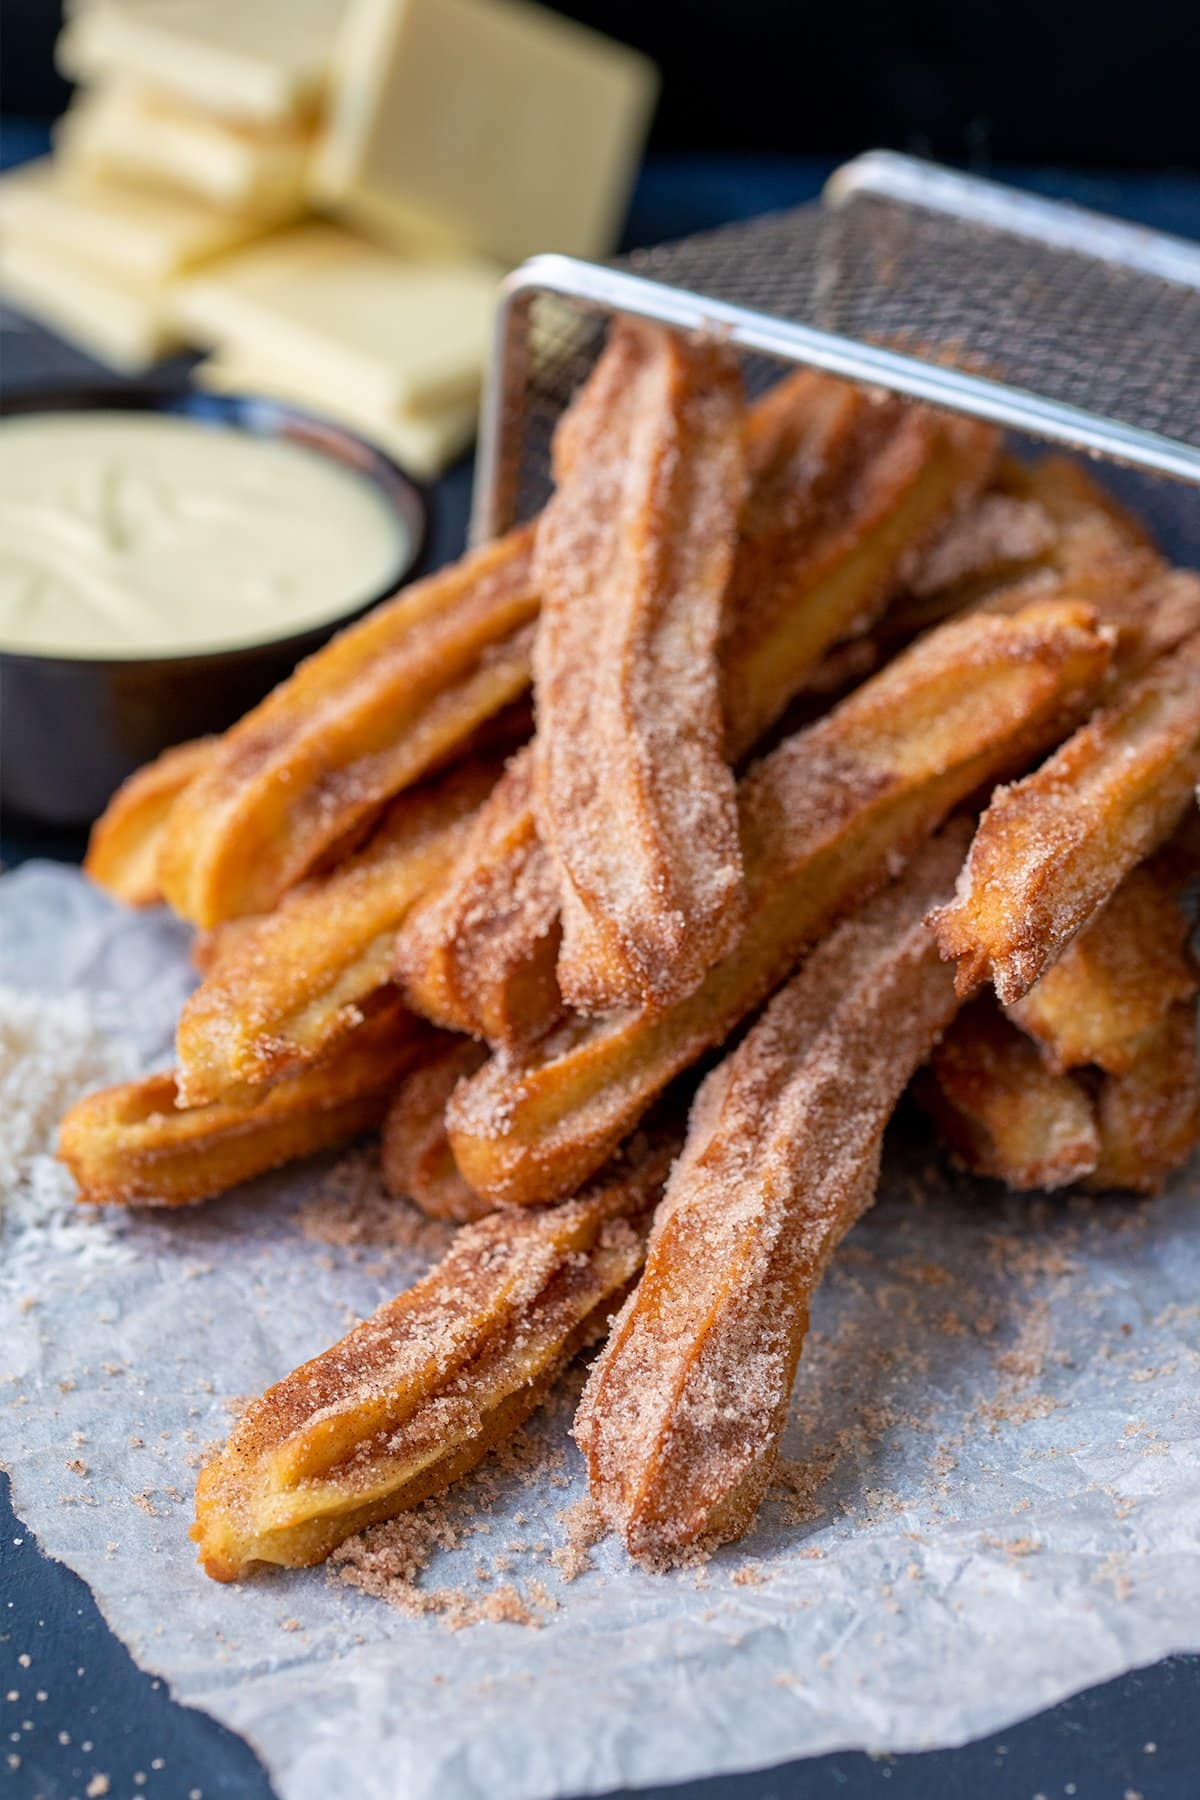 Picture of baked churros dusted with cinnamon sugar on their side in a wire basket with white chocolate in the background out of focus.